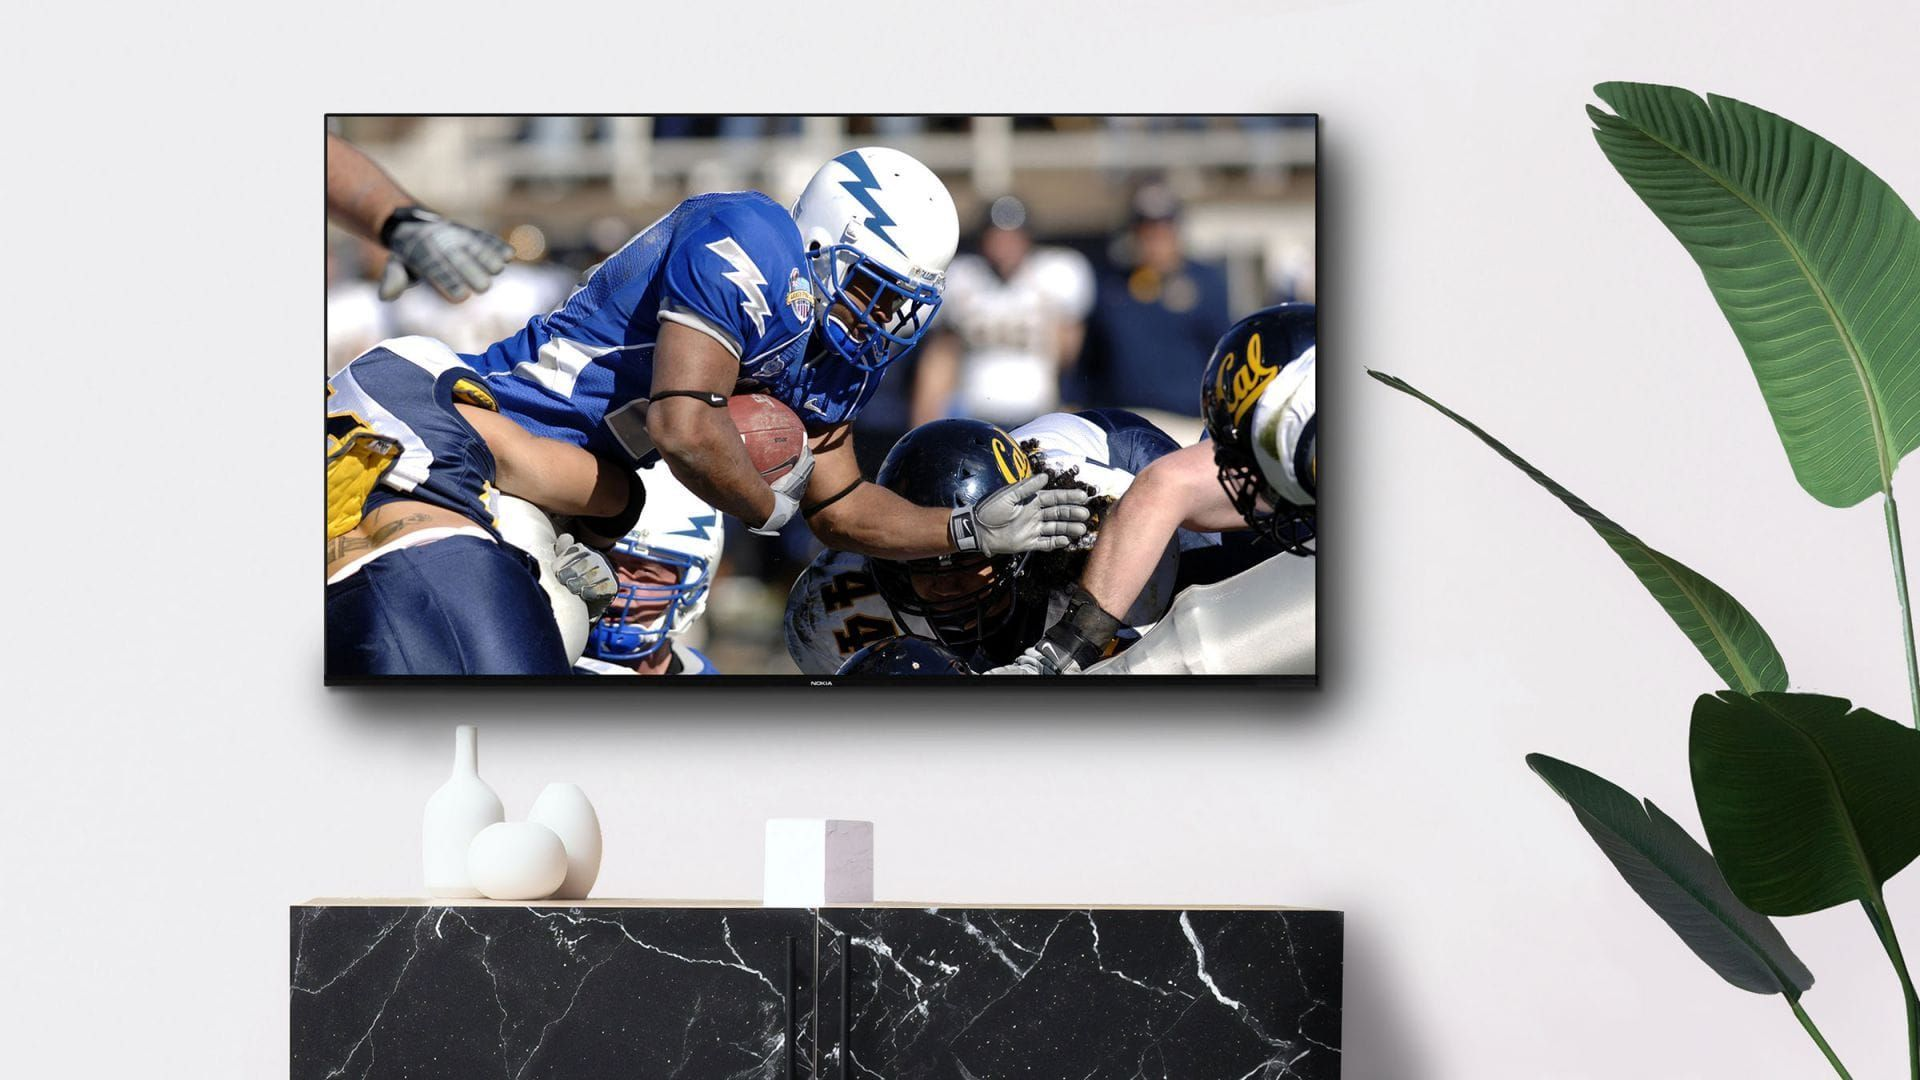 Get The Best Of Digital Entertainment At Home With These Tvs And Hometheaters In 2021 Home Tv Cool Tech Gadgets Android Tv